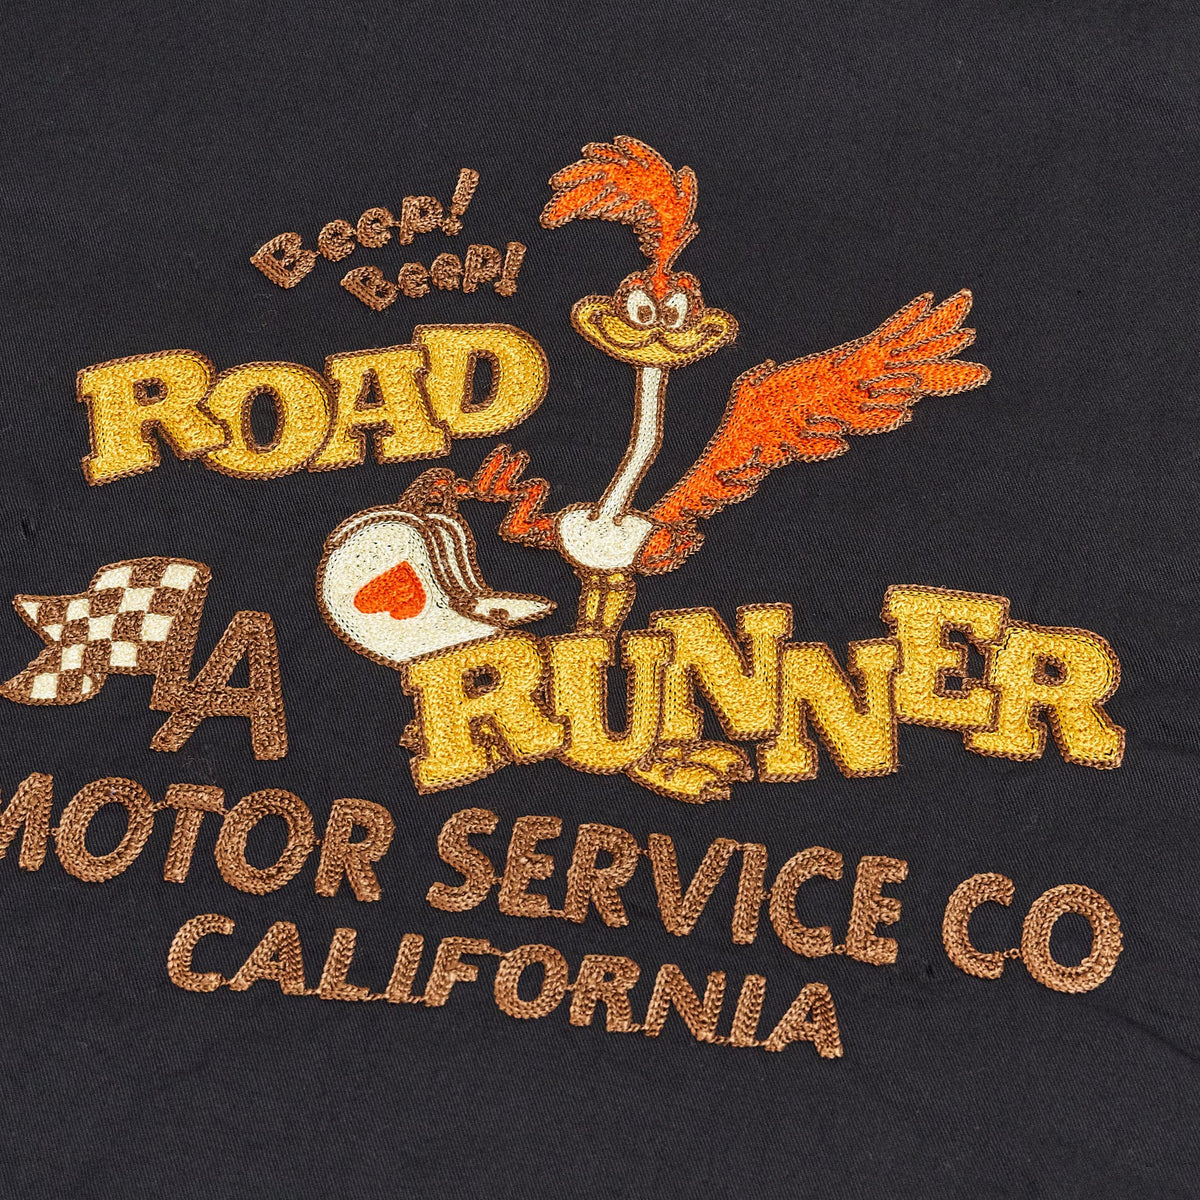 Sugar Cane MFG Road Runner Motor Service Garage Shirt